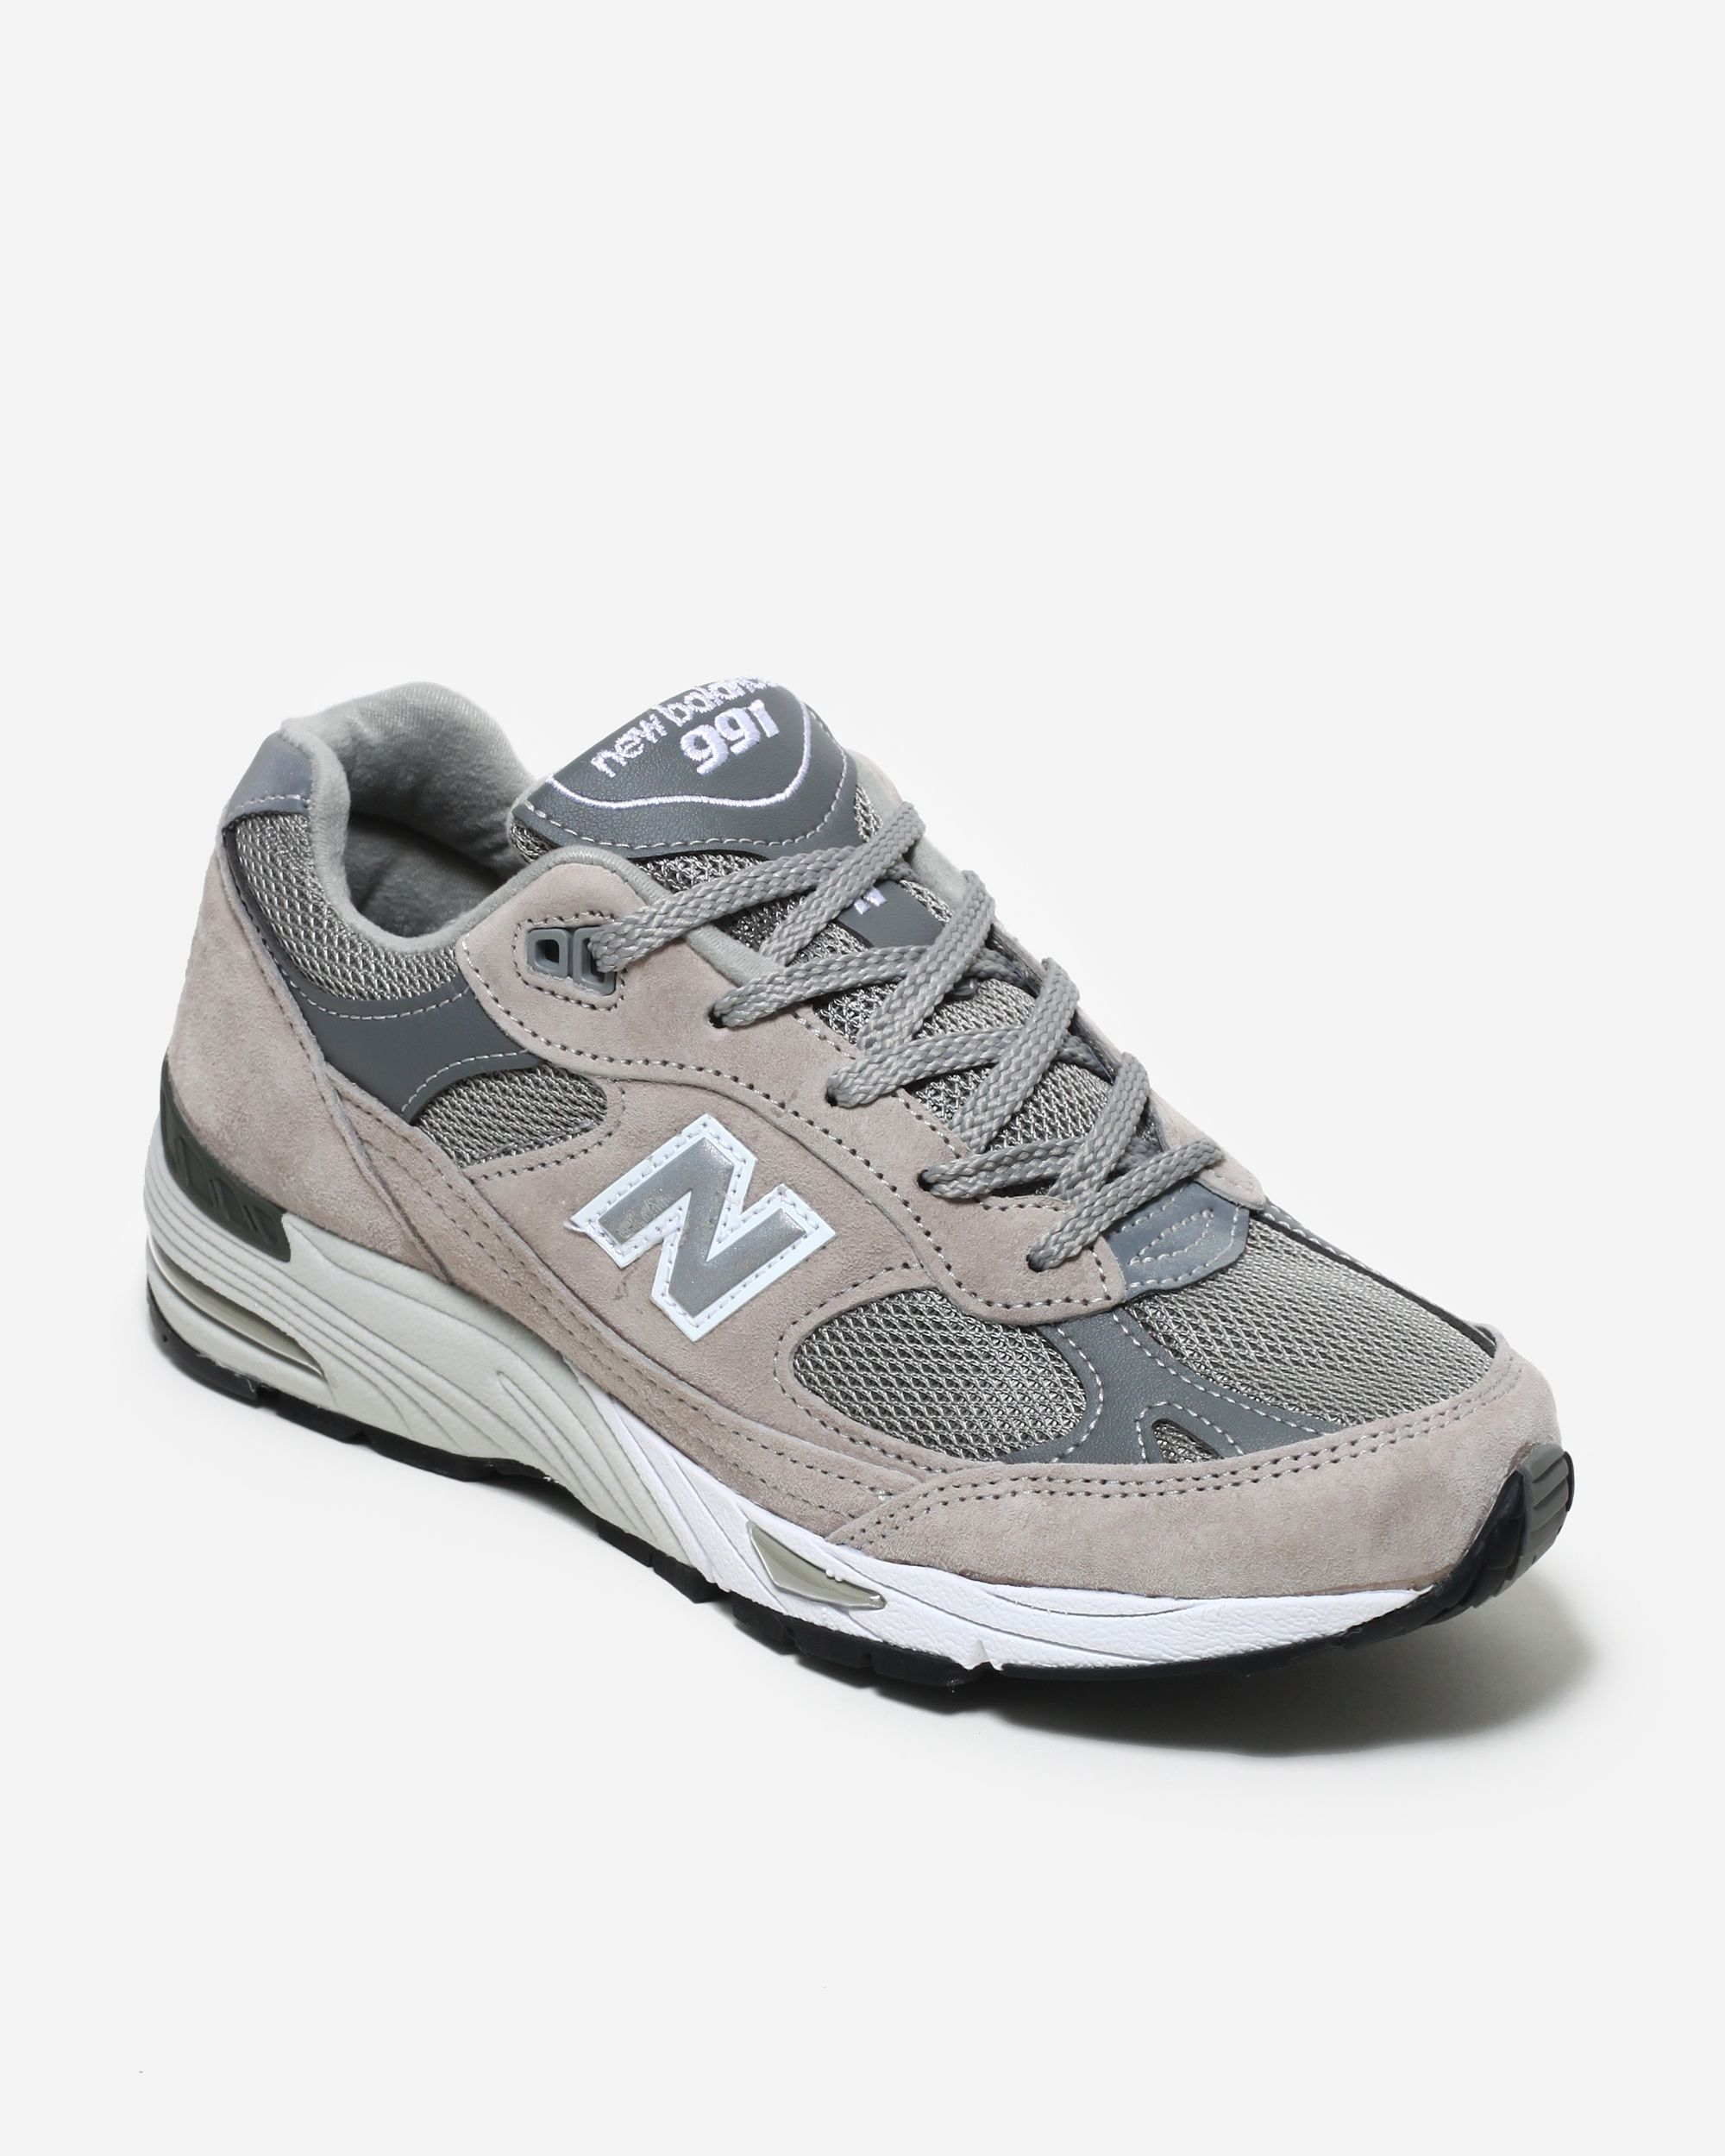 fa43cd0e845f9 Buy at Naked. Color: Grey. Article number: W991GL. Supplying girls with  sneakers since